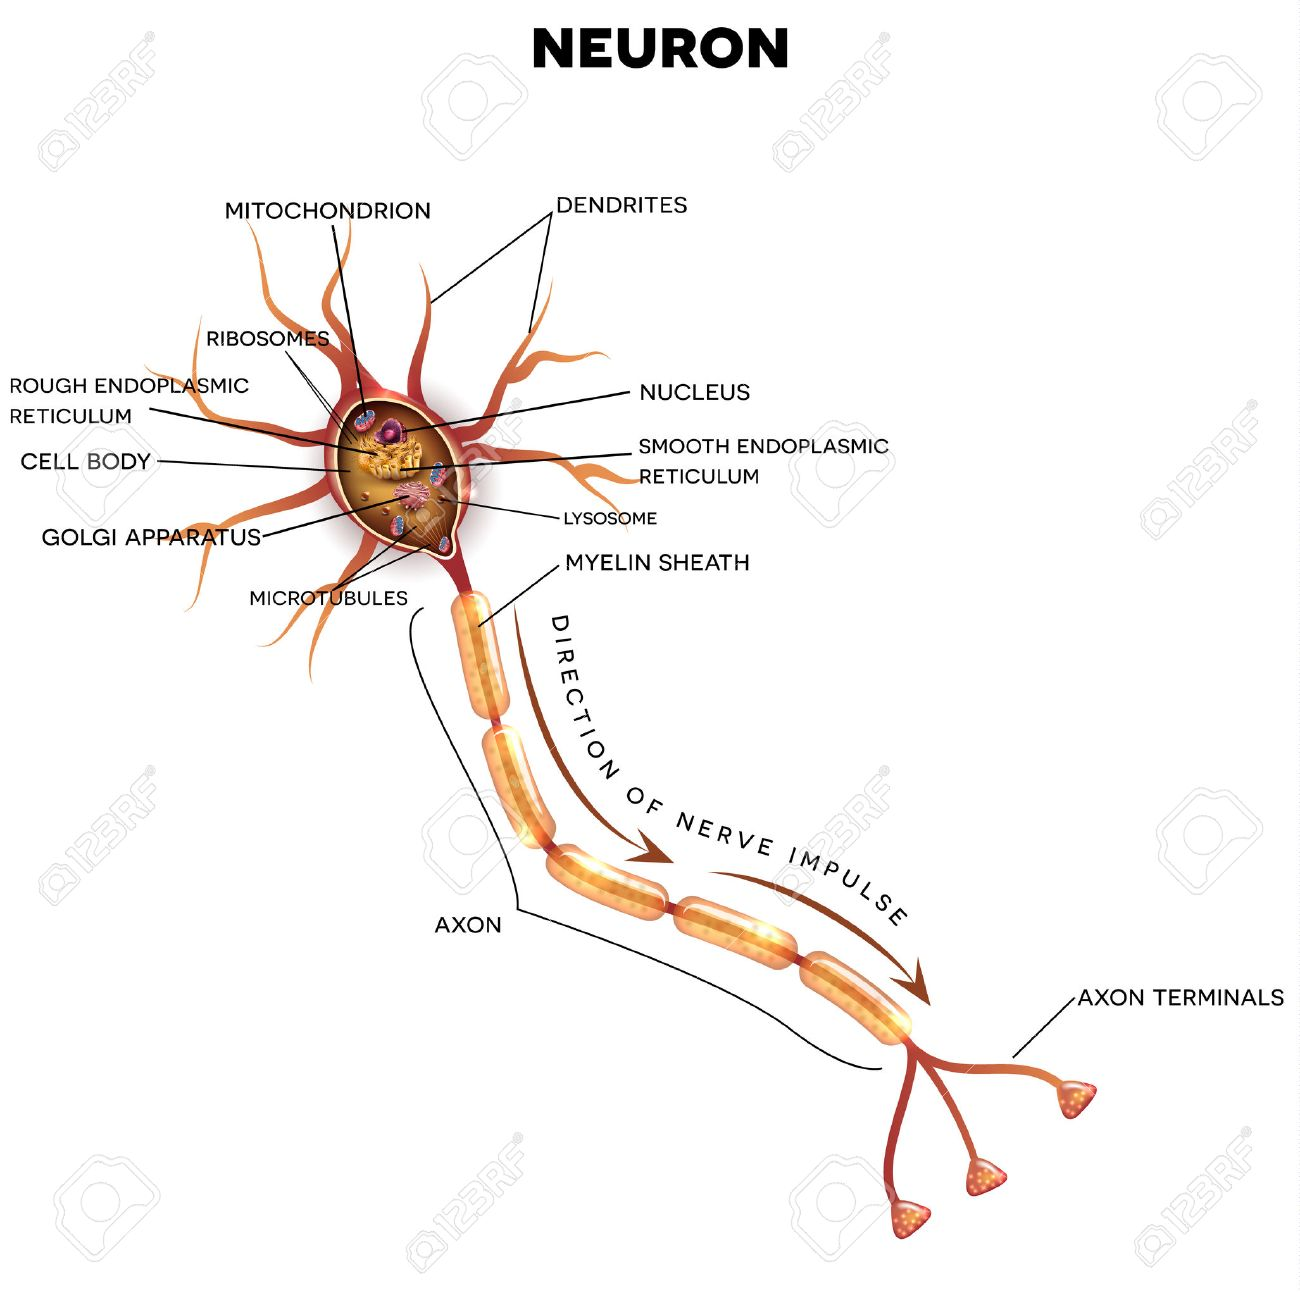 hight resolution of neuron nerve cell that is the main part of the nervous system cross section